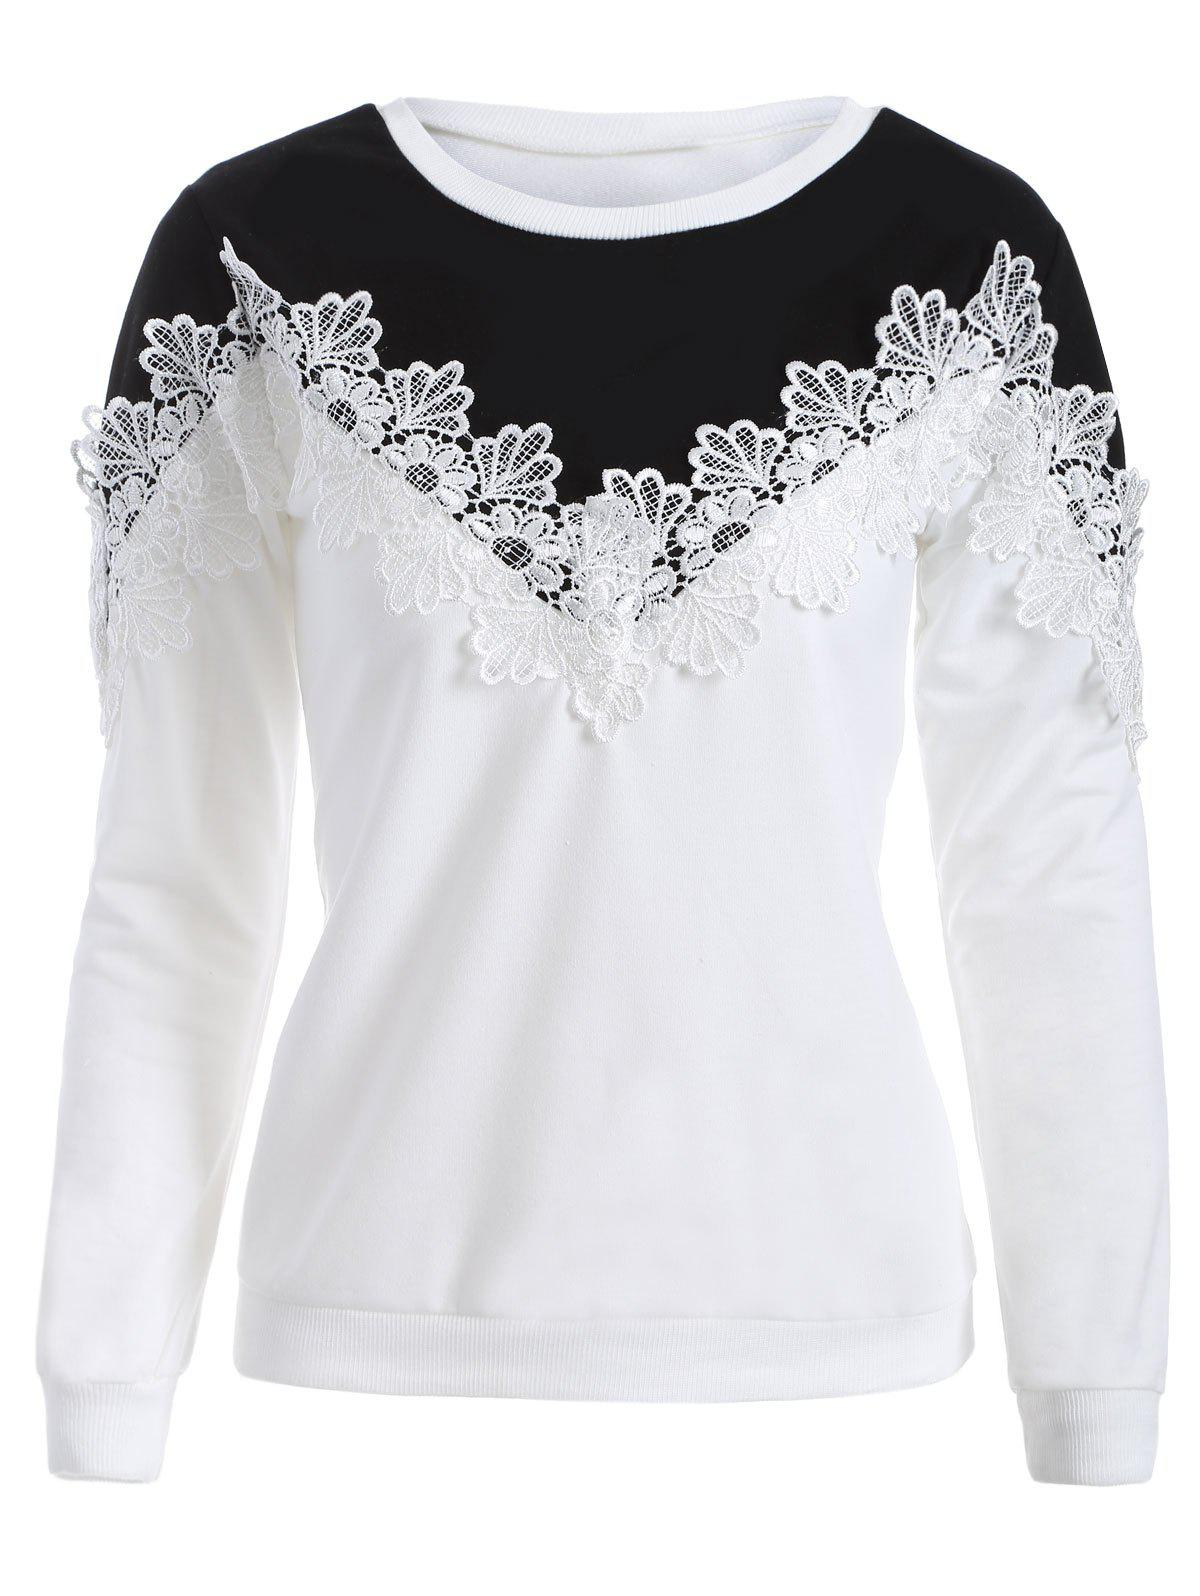 Crochet Trim Chevron Panel Sweatshirt - WHITE/BLACK L